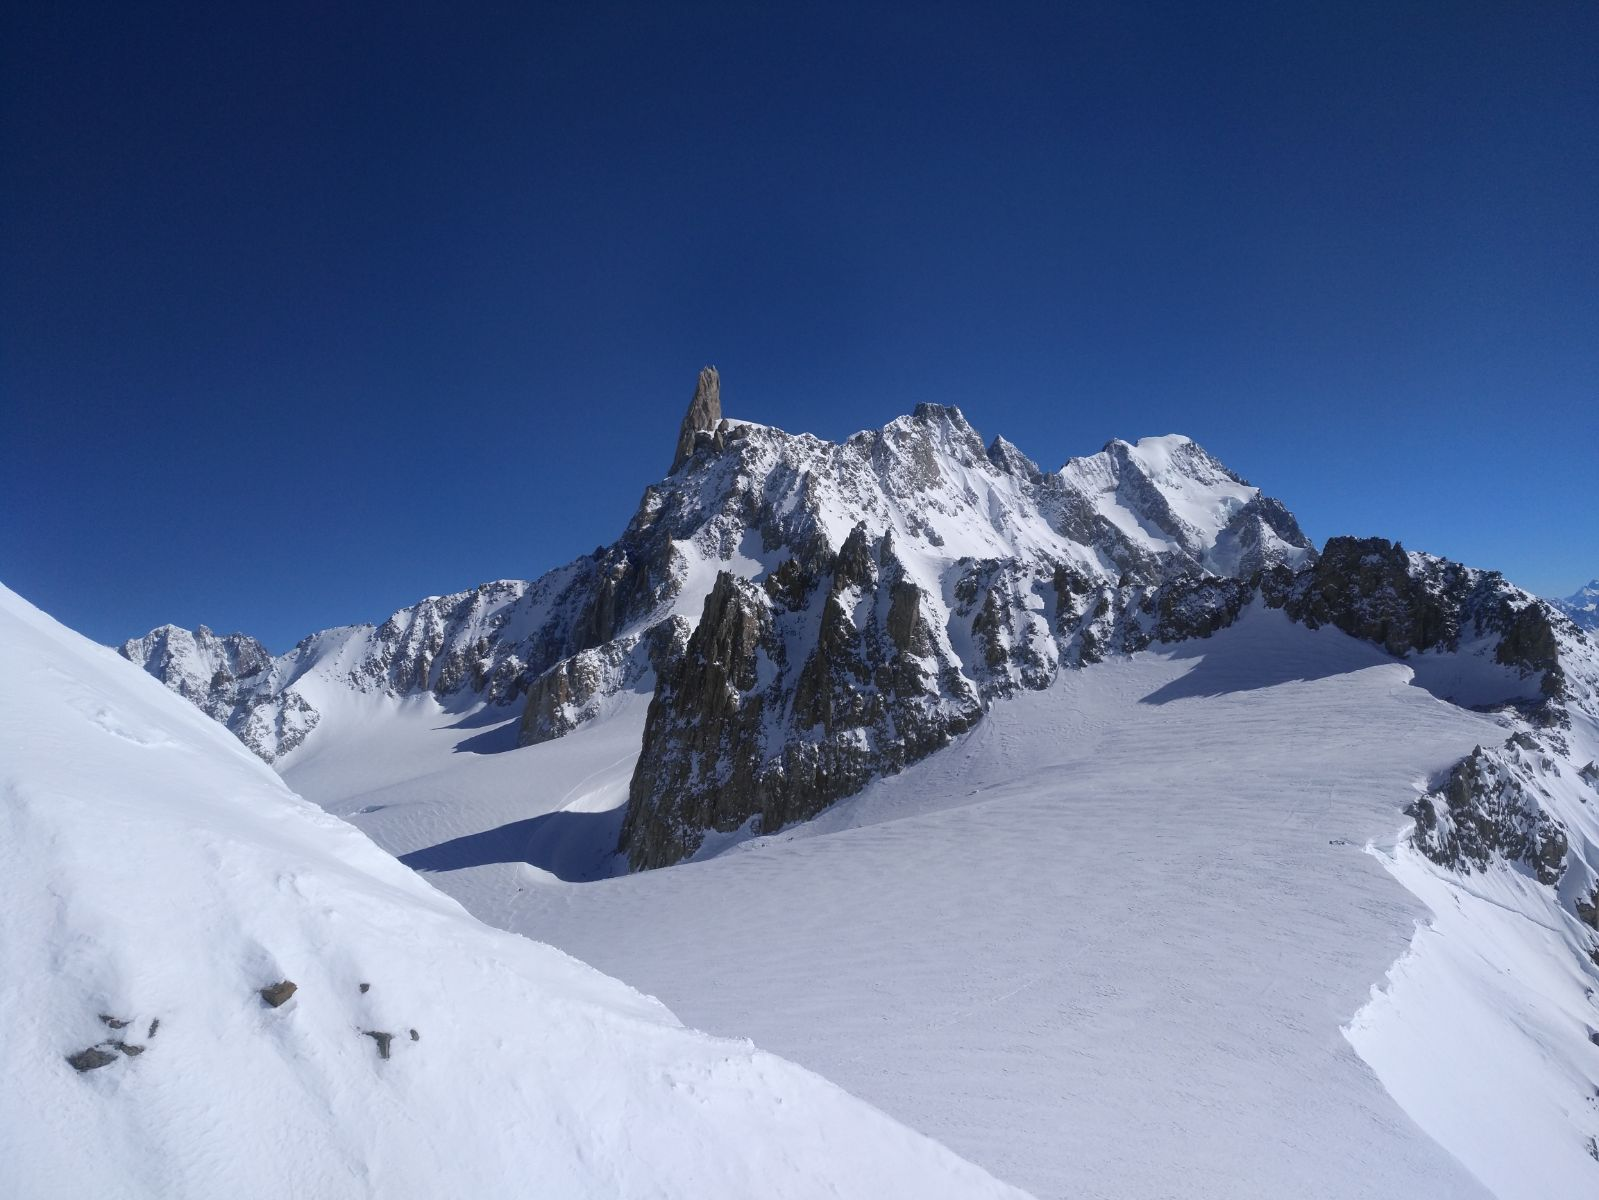 vallee blanche guide alpine proup (6)